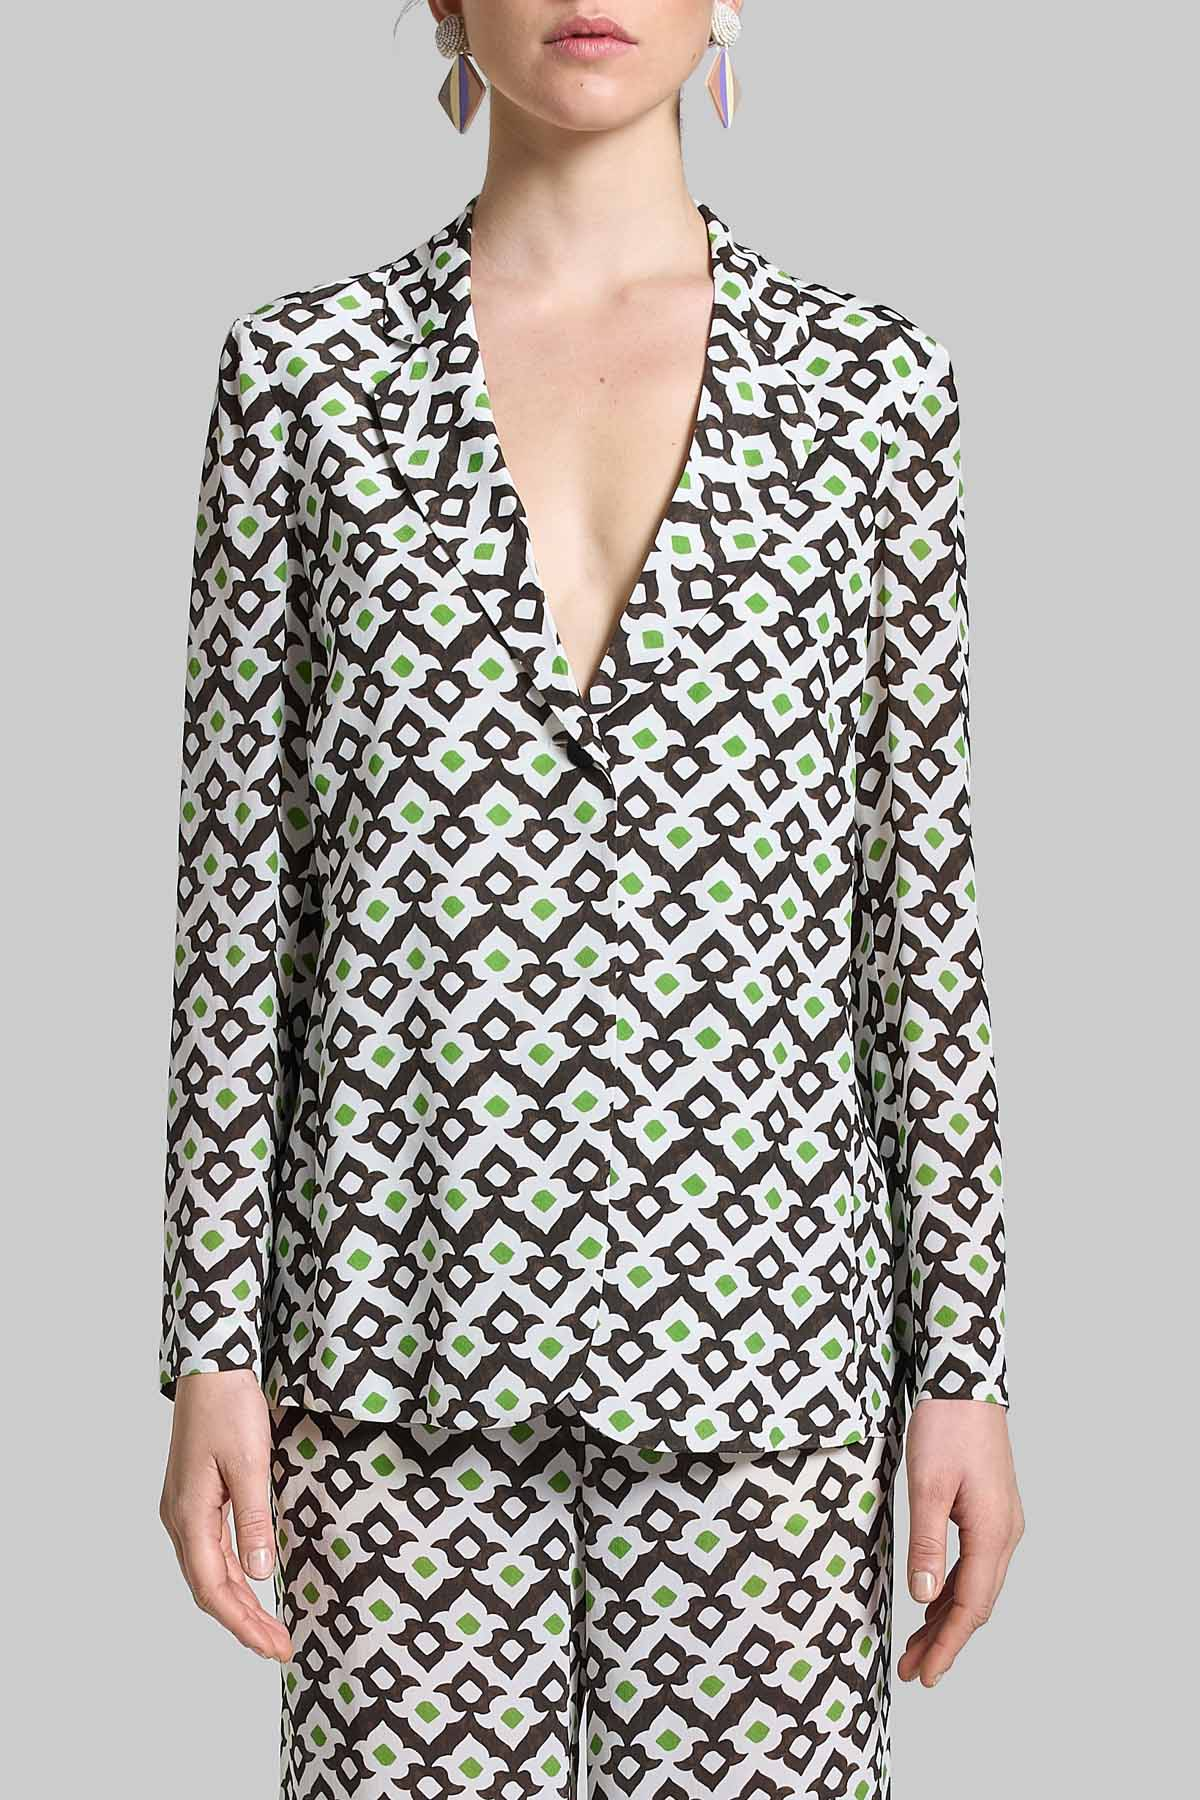 Women's Clothing Vis Ceres Diamond White and Black Single-Breasted One Button Jacket Maliparmi |  | JD625550552A1050